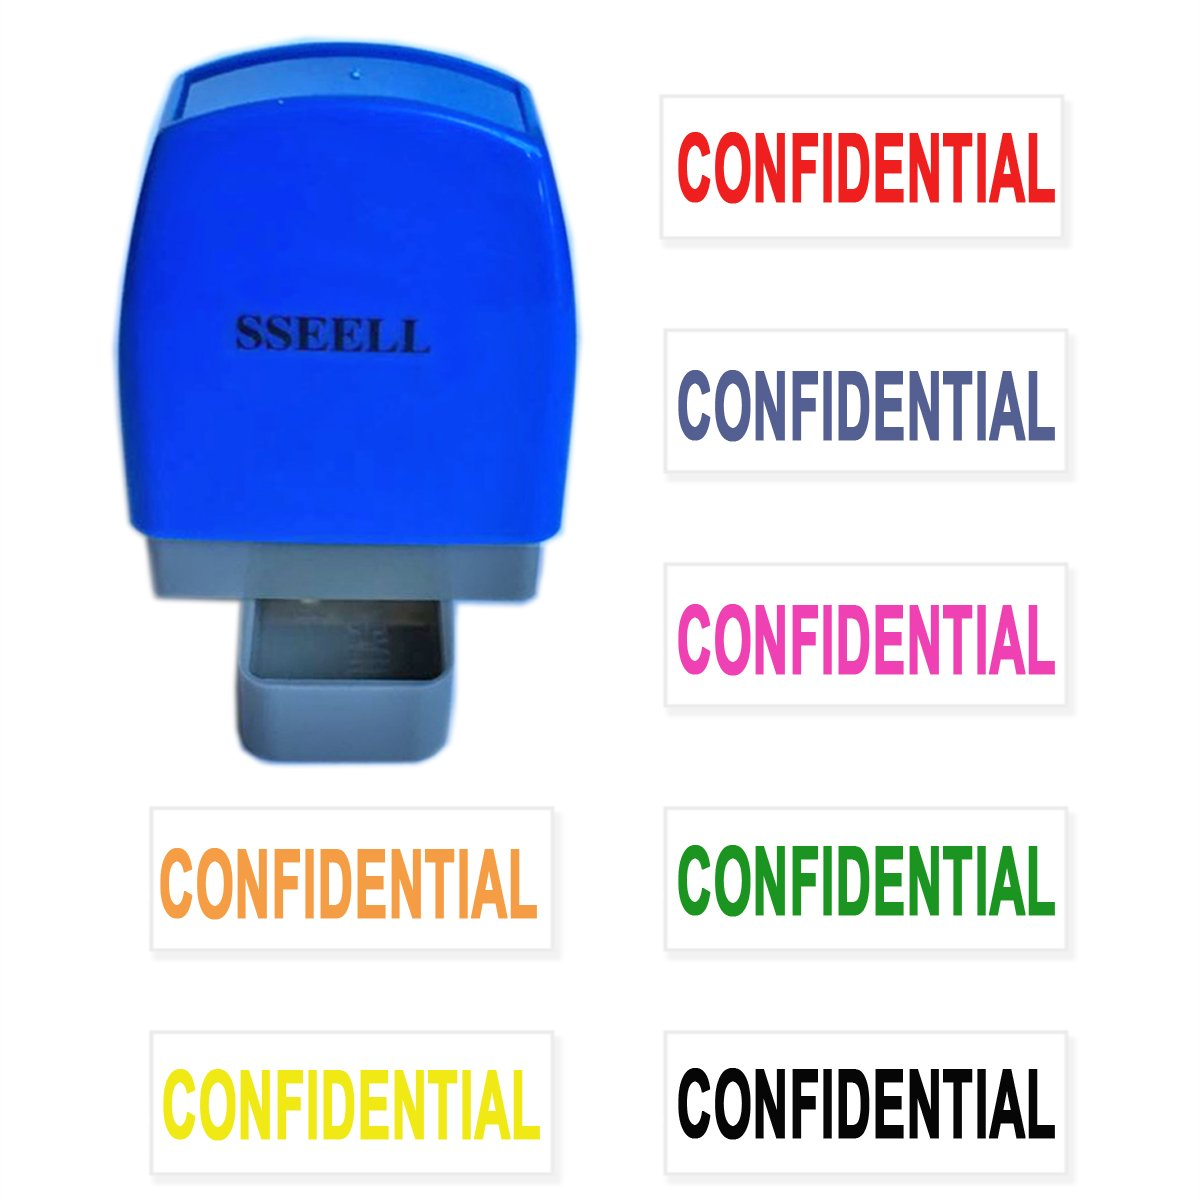 SSEELL Confidential Self Inking Rubber Flash Stamp Self-Inking Pre-Inked Re-inkable Office Work Company School Stationary Stamps Without Frame Line - Black Ink Color